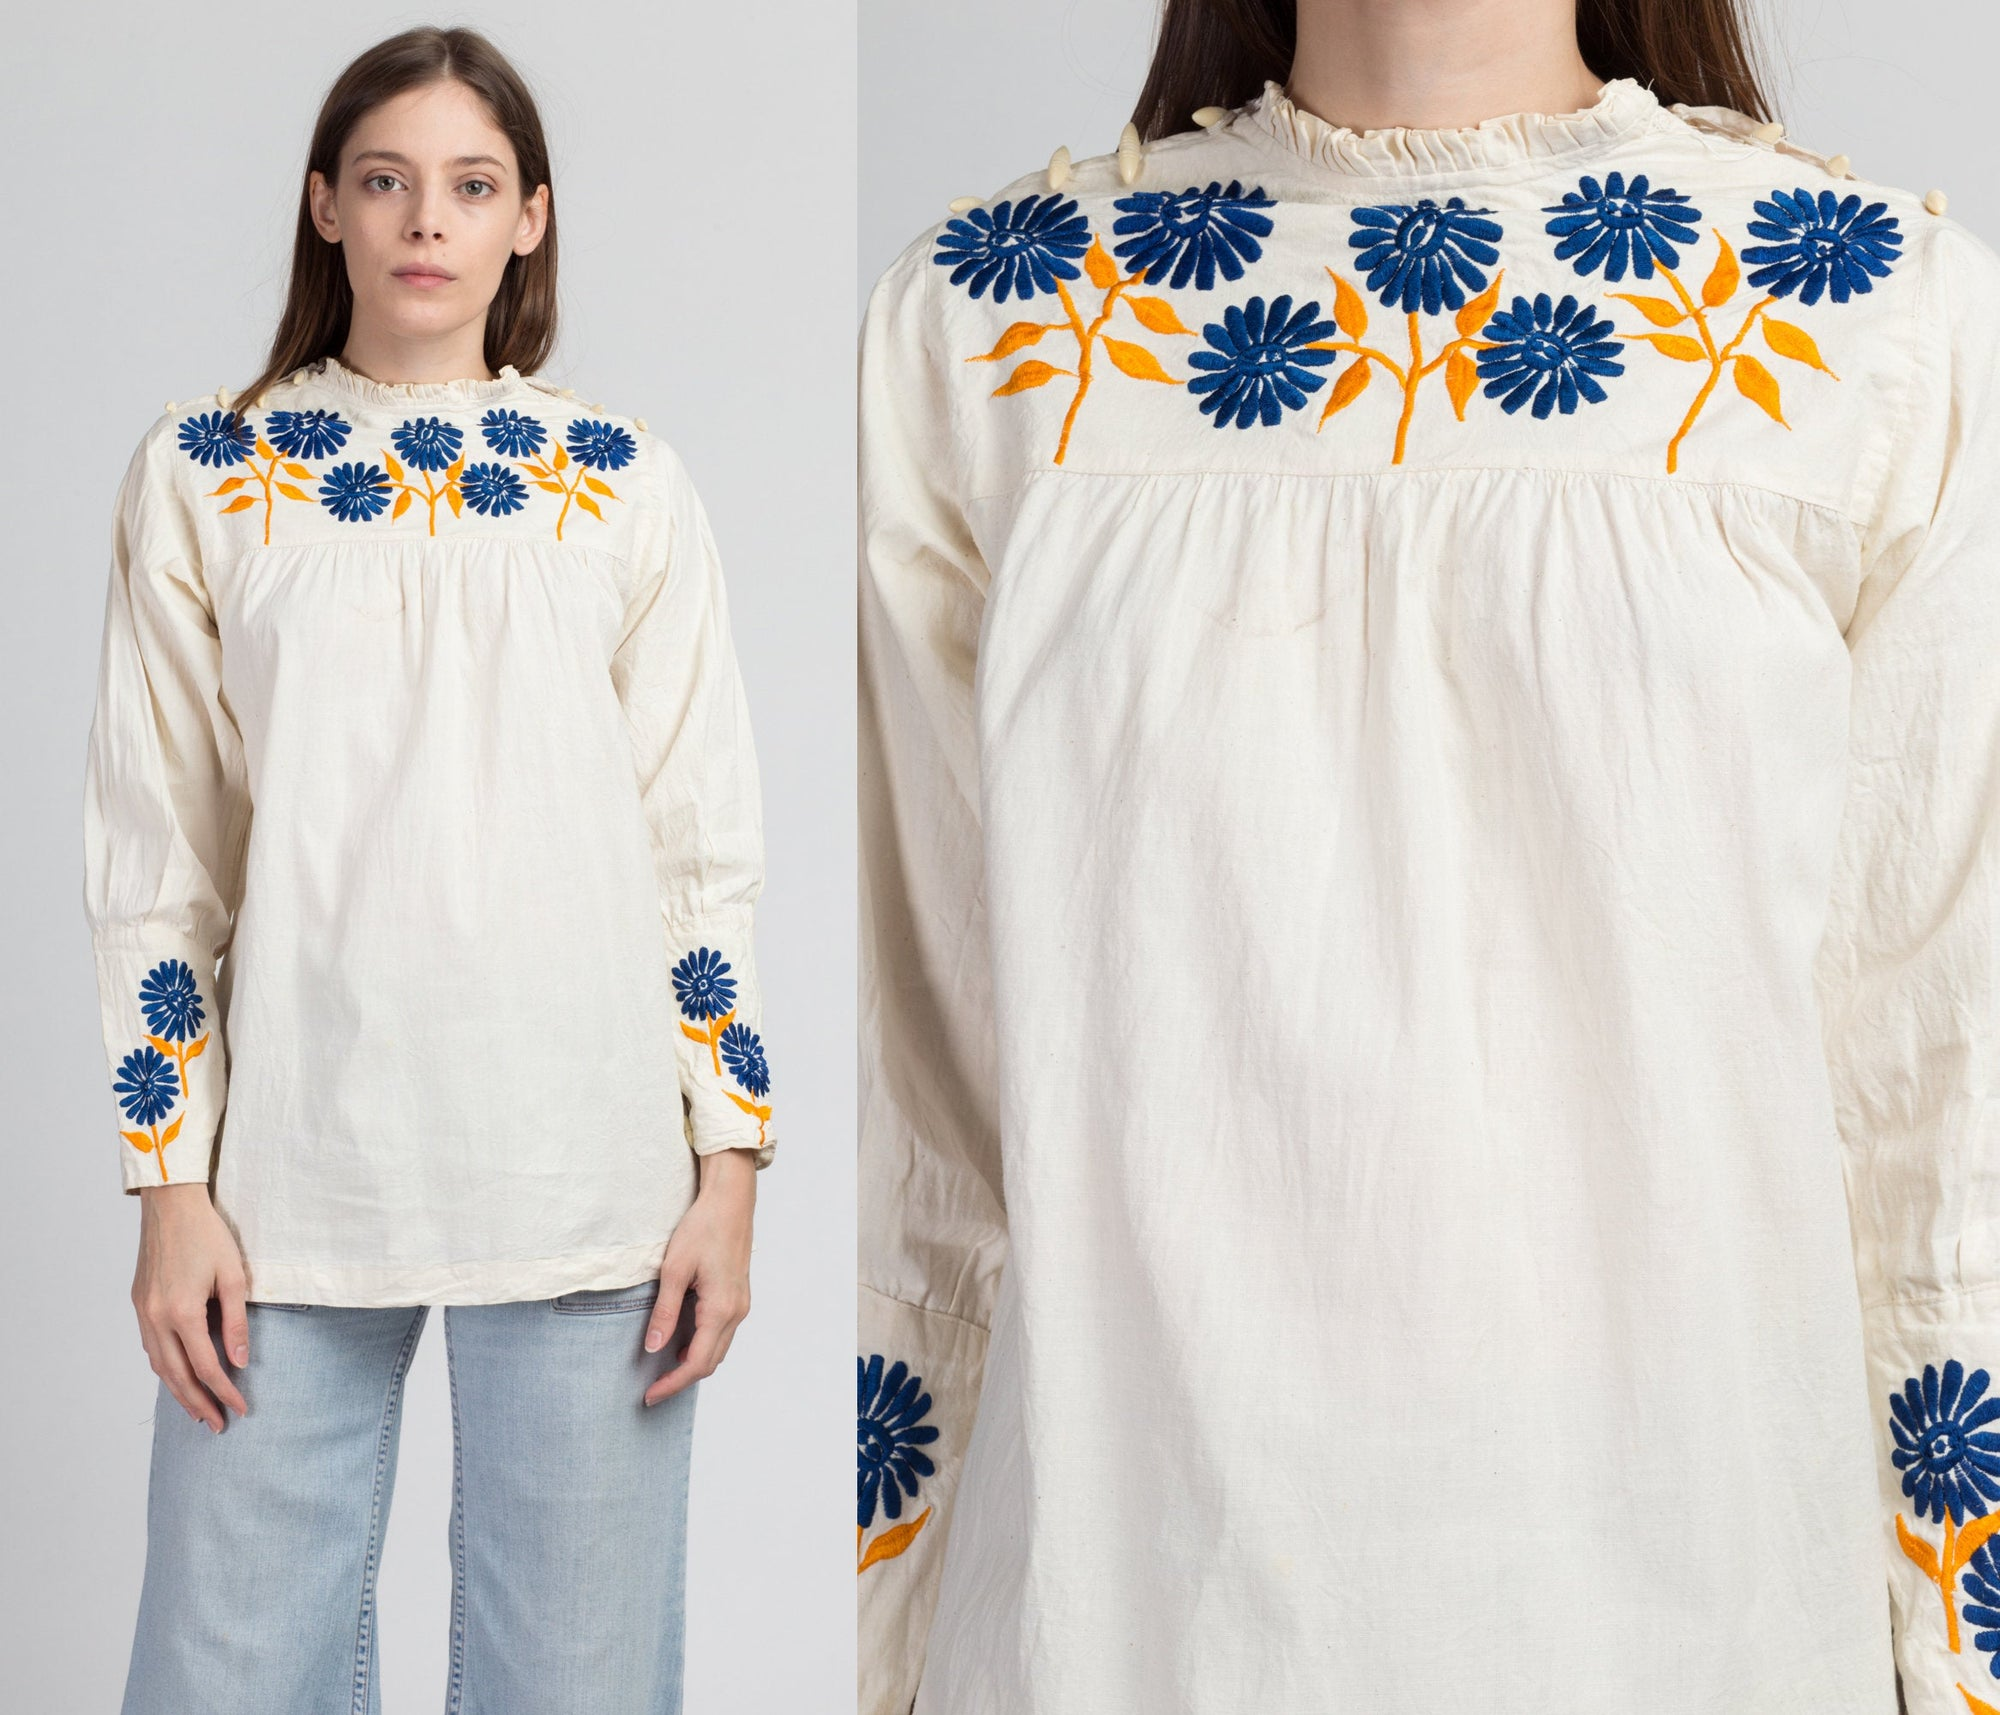 Vintage Embroidered Tunic Peasant Shirt - Medium